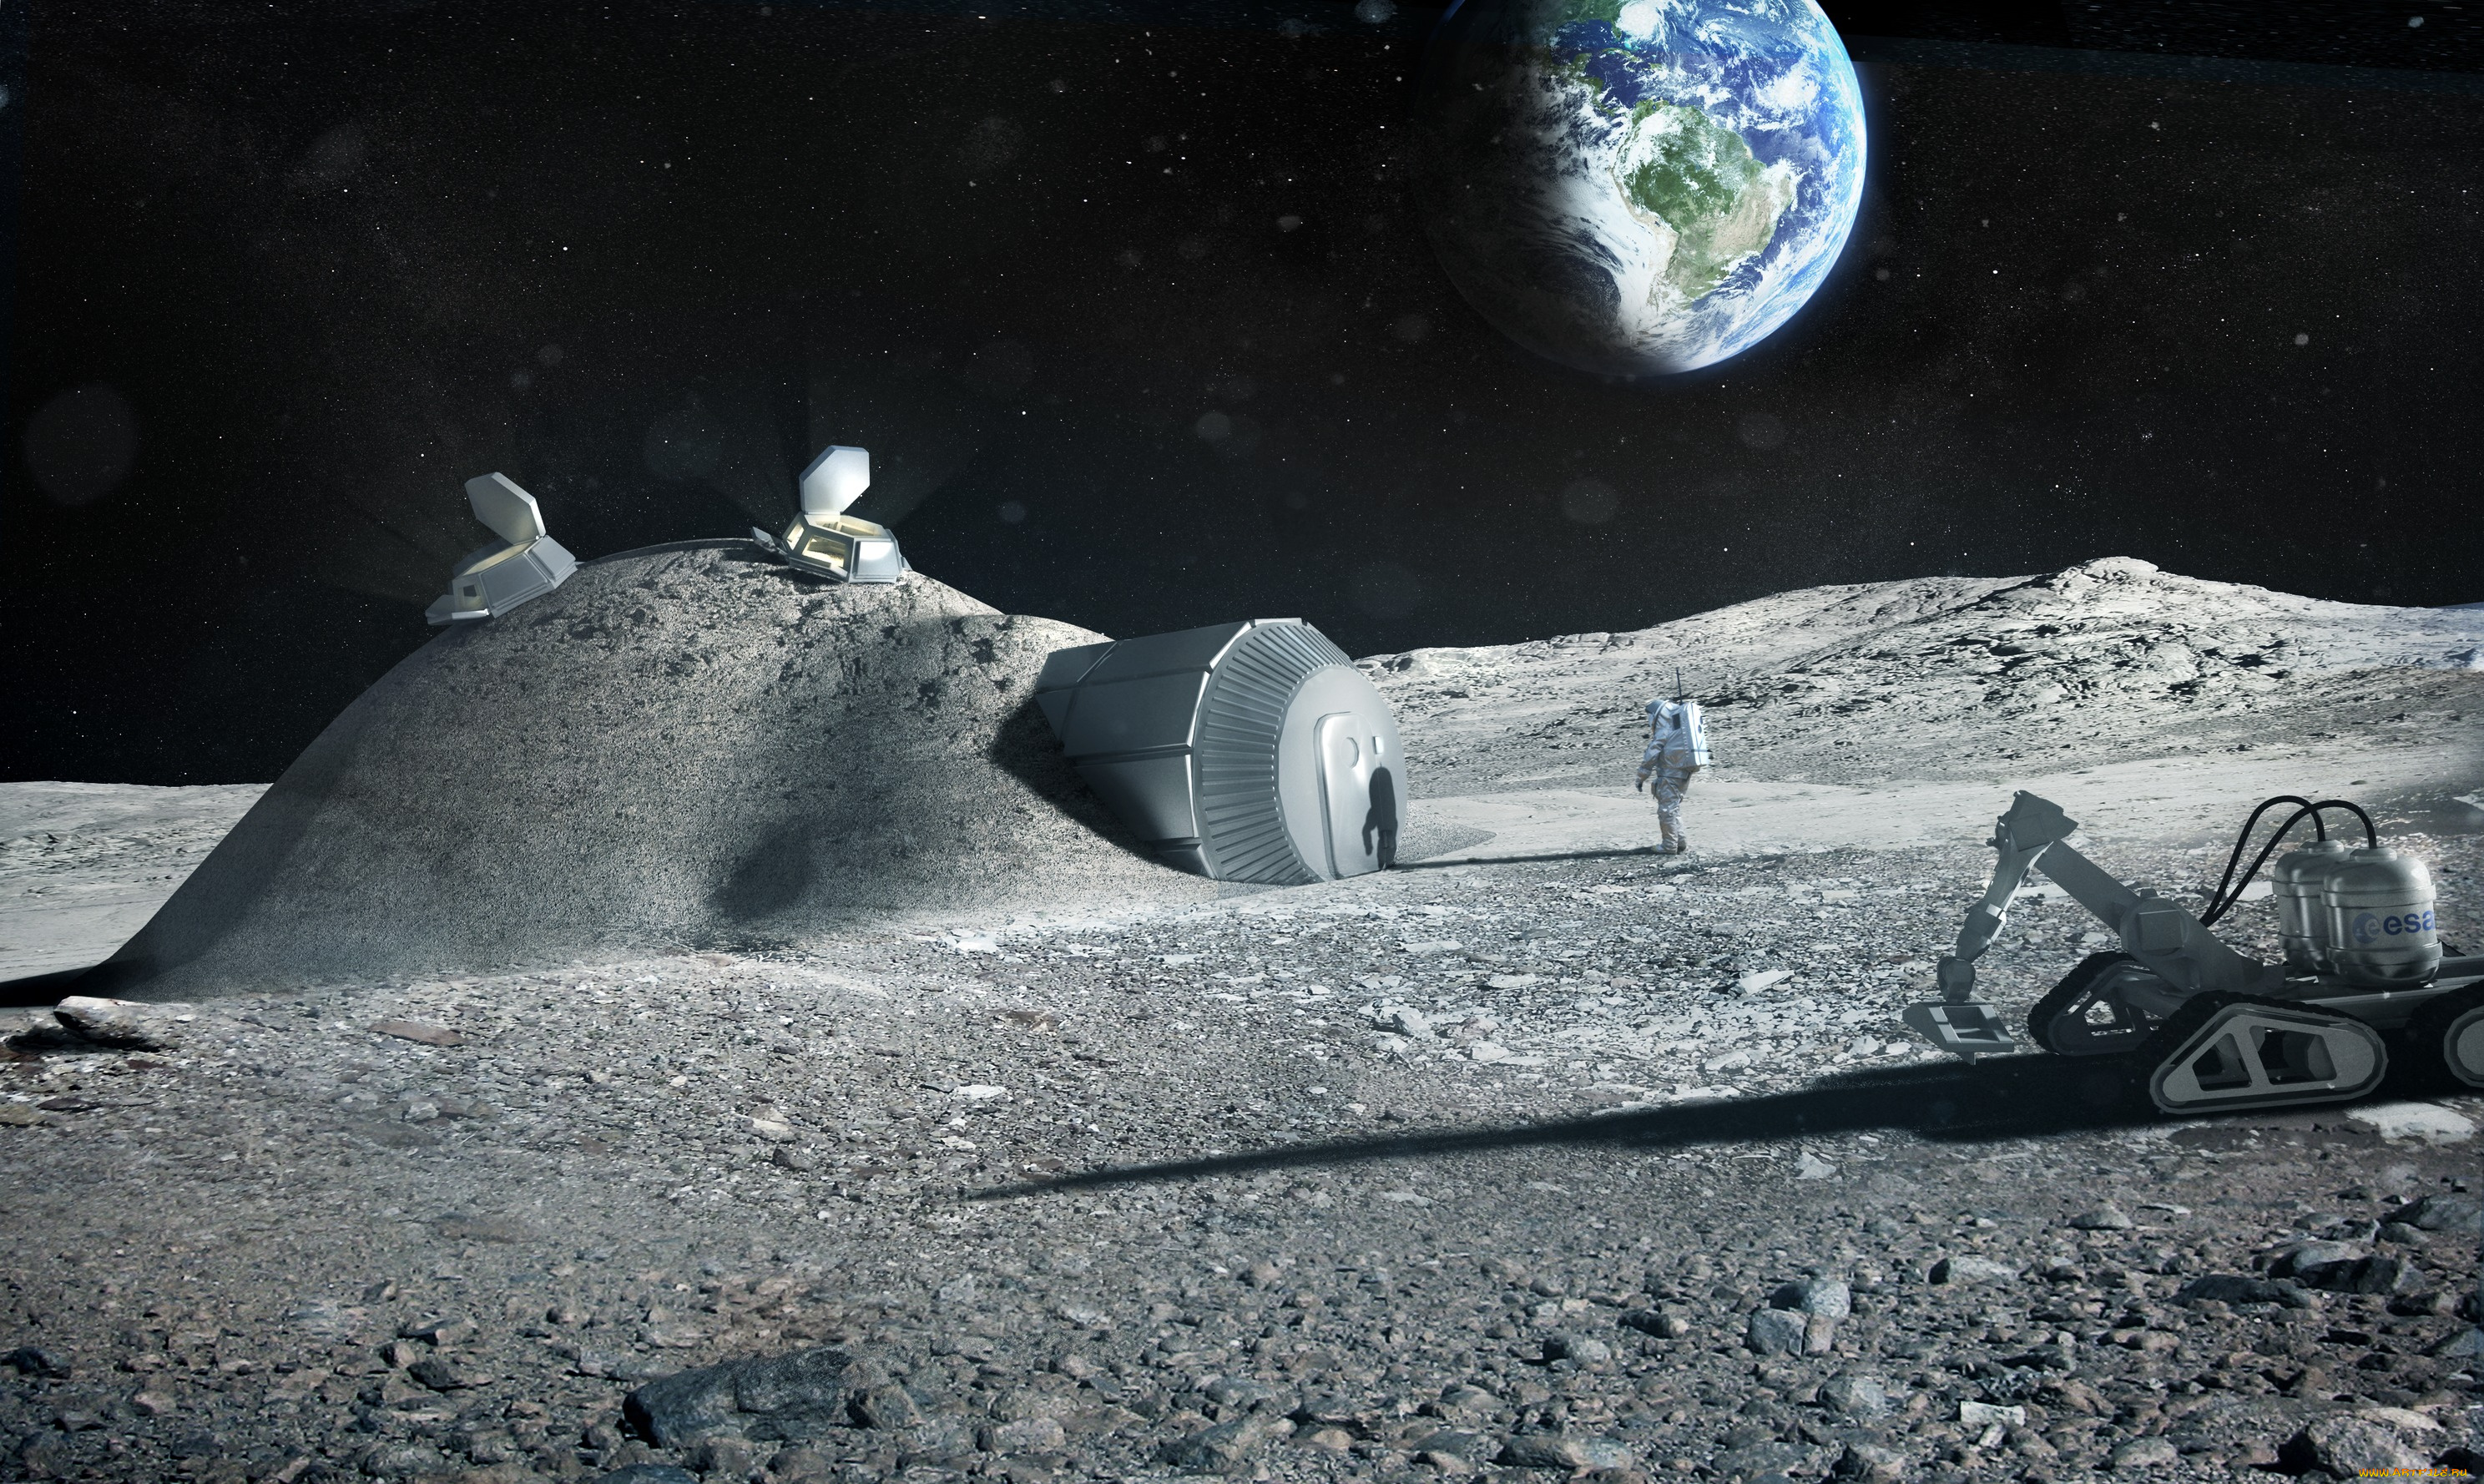 china space program to the moon - HD 2976×1778